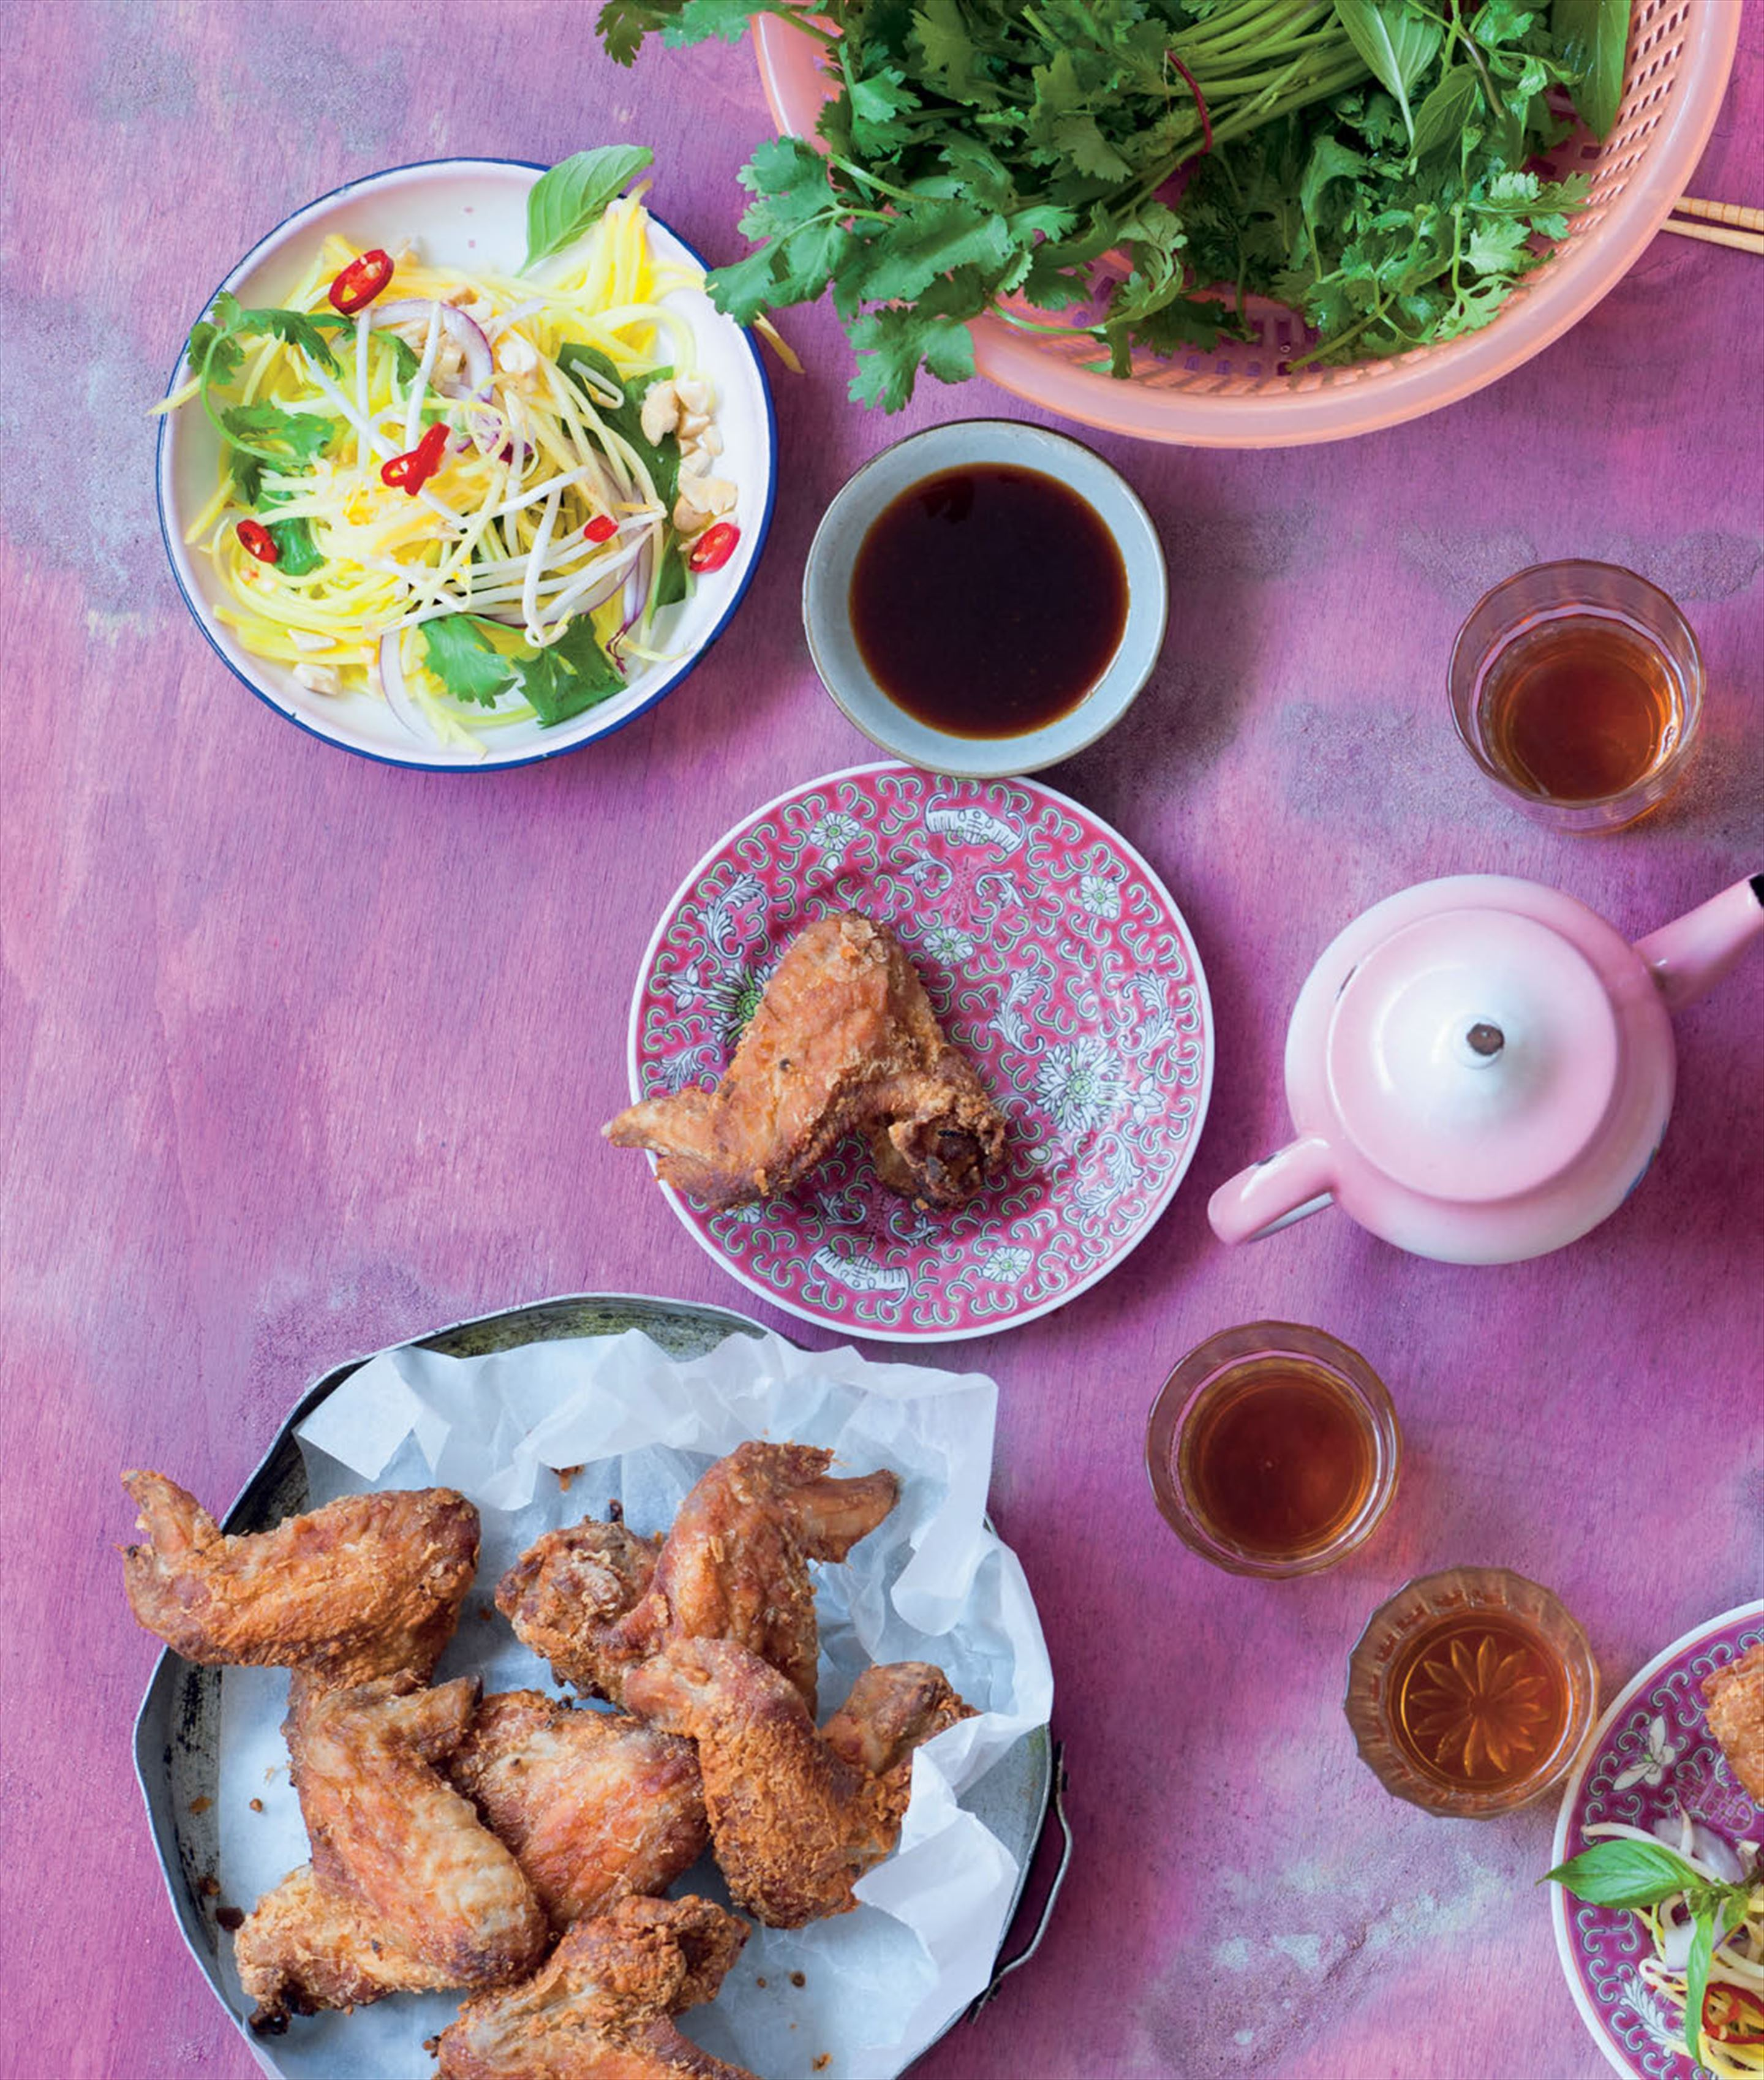 Chicken wings with green mango salad